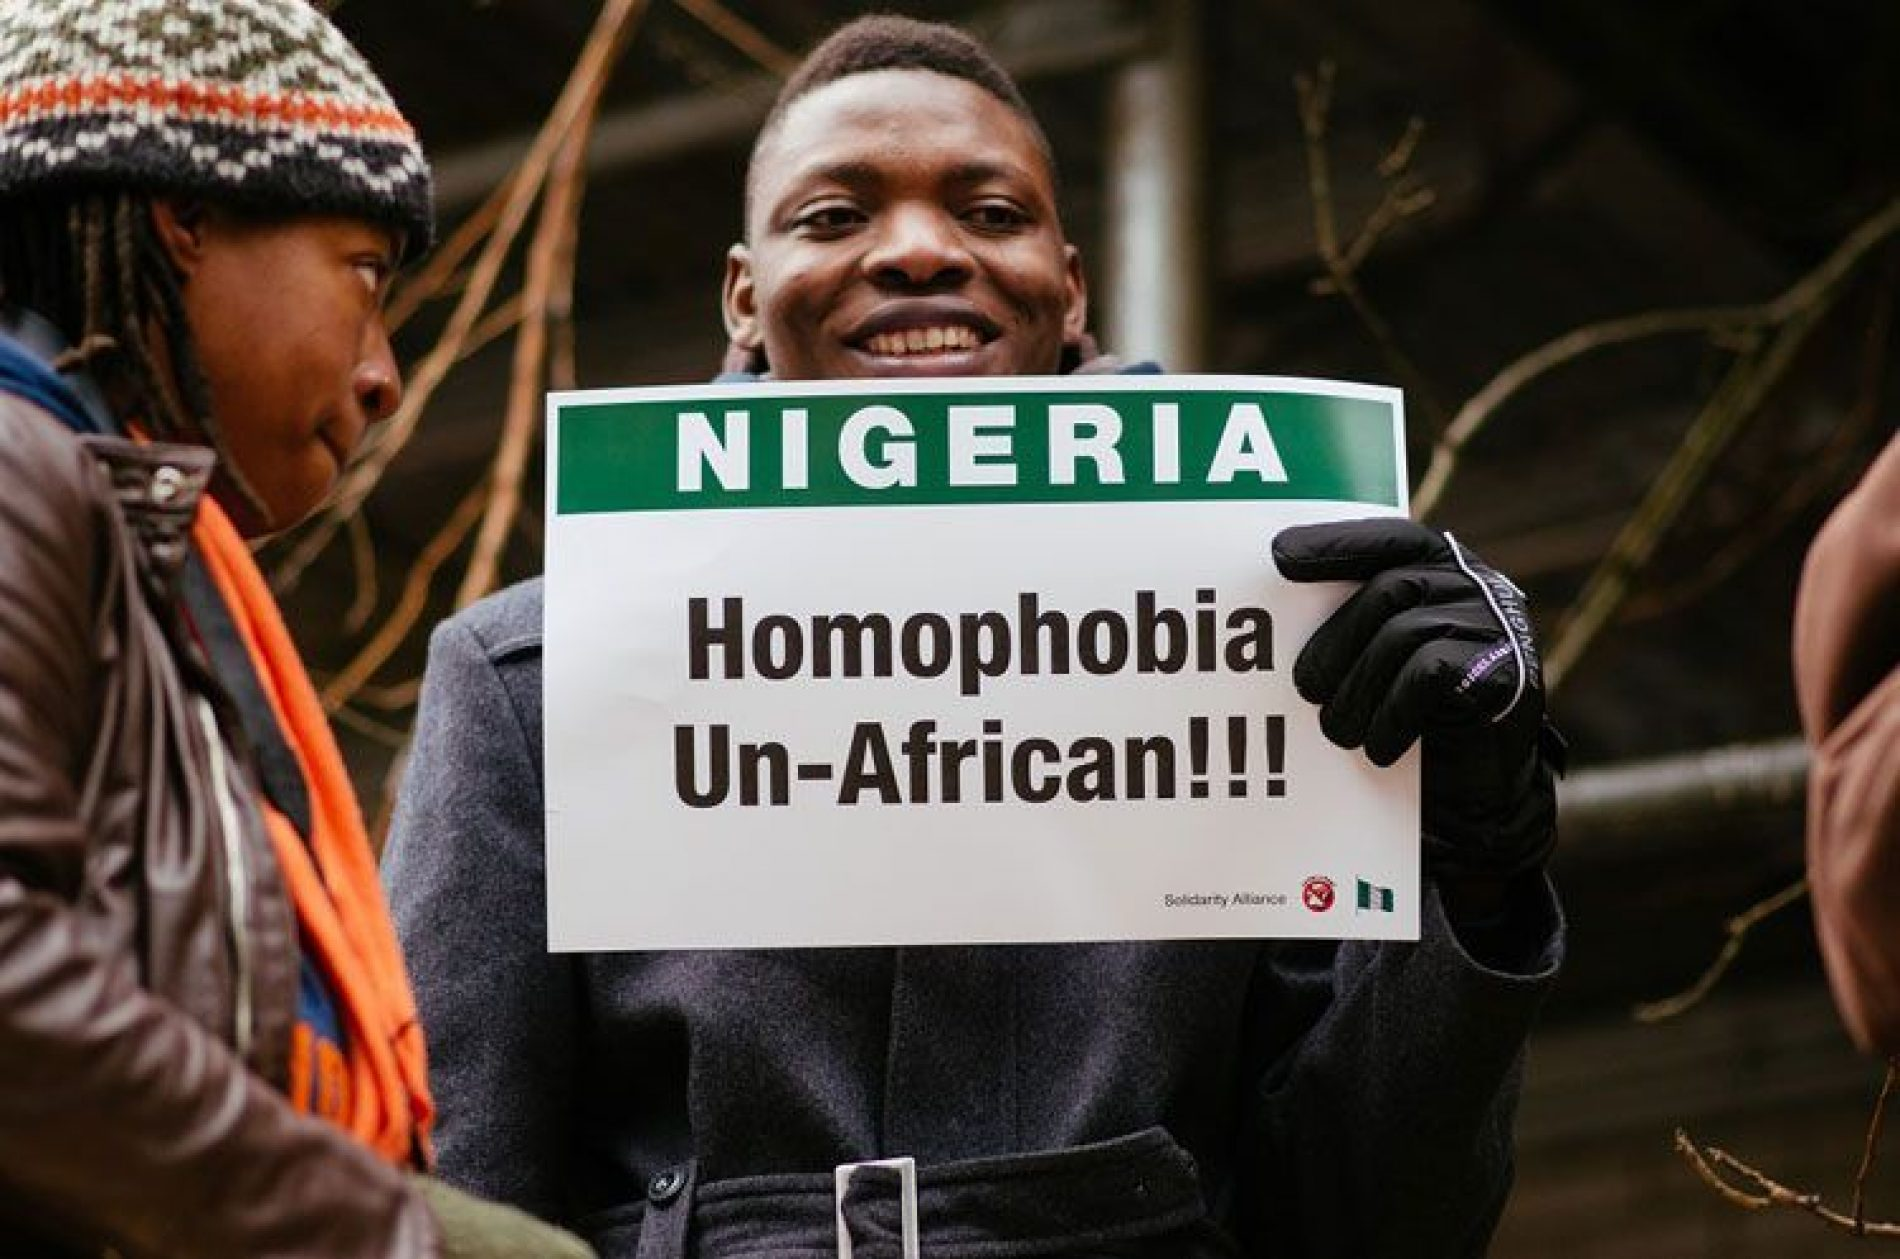 Opinion: Are Anti-Gay Witch Hunts Really Protecting 'African Values'?